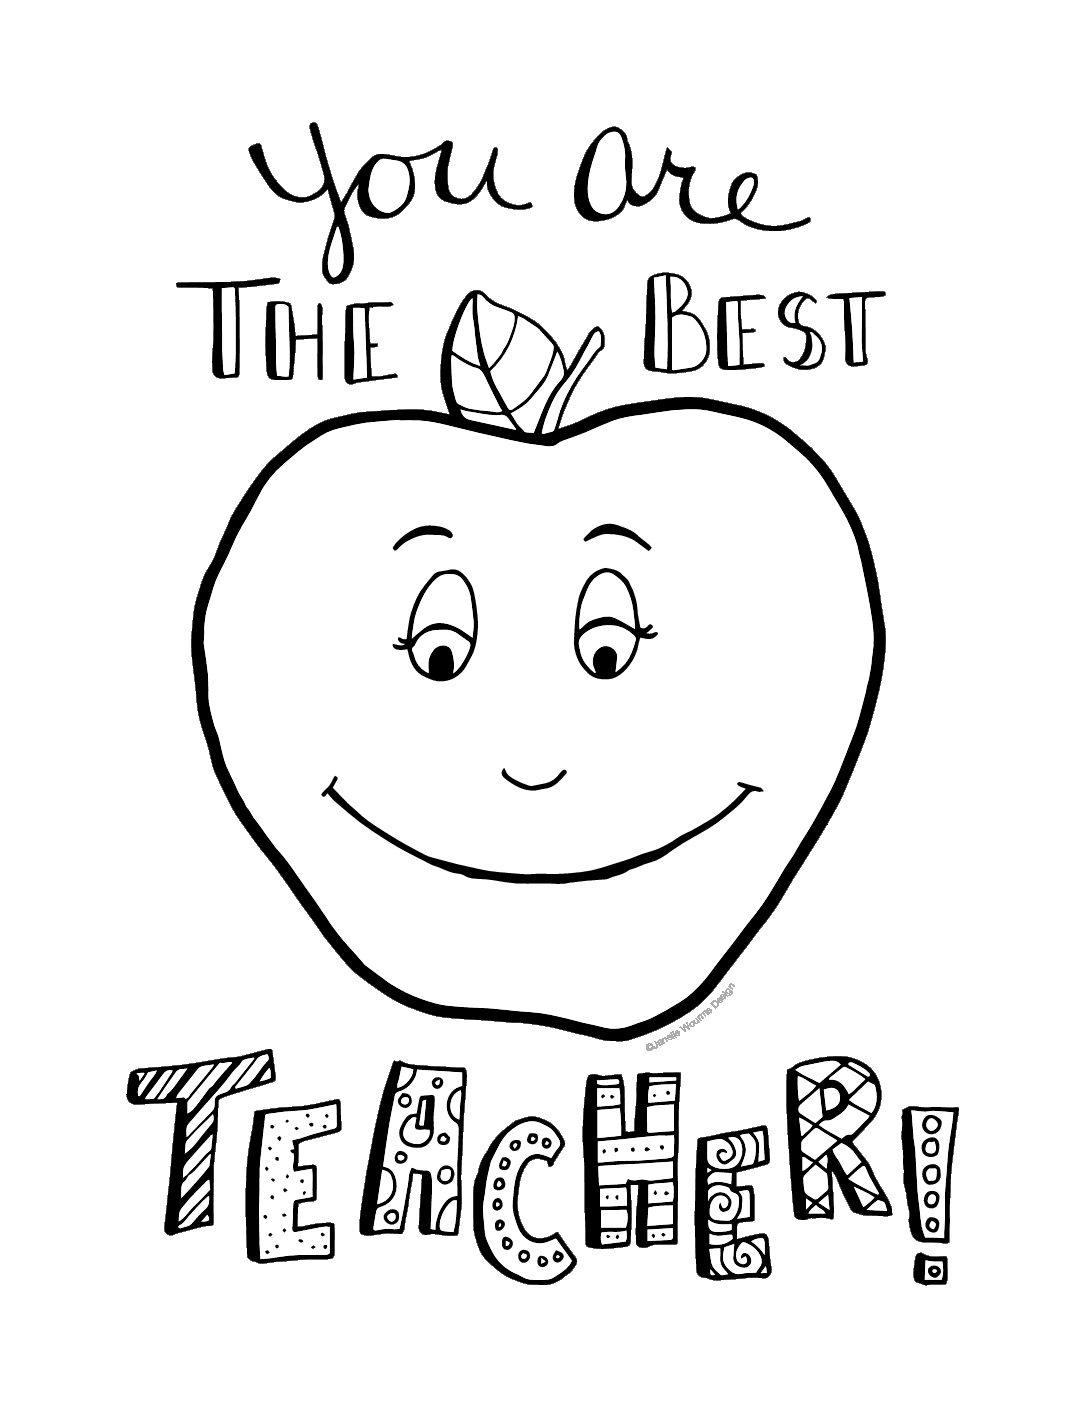 - The Best Teacher Teacher Appreciation Coloring Page - Finding Zest